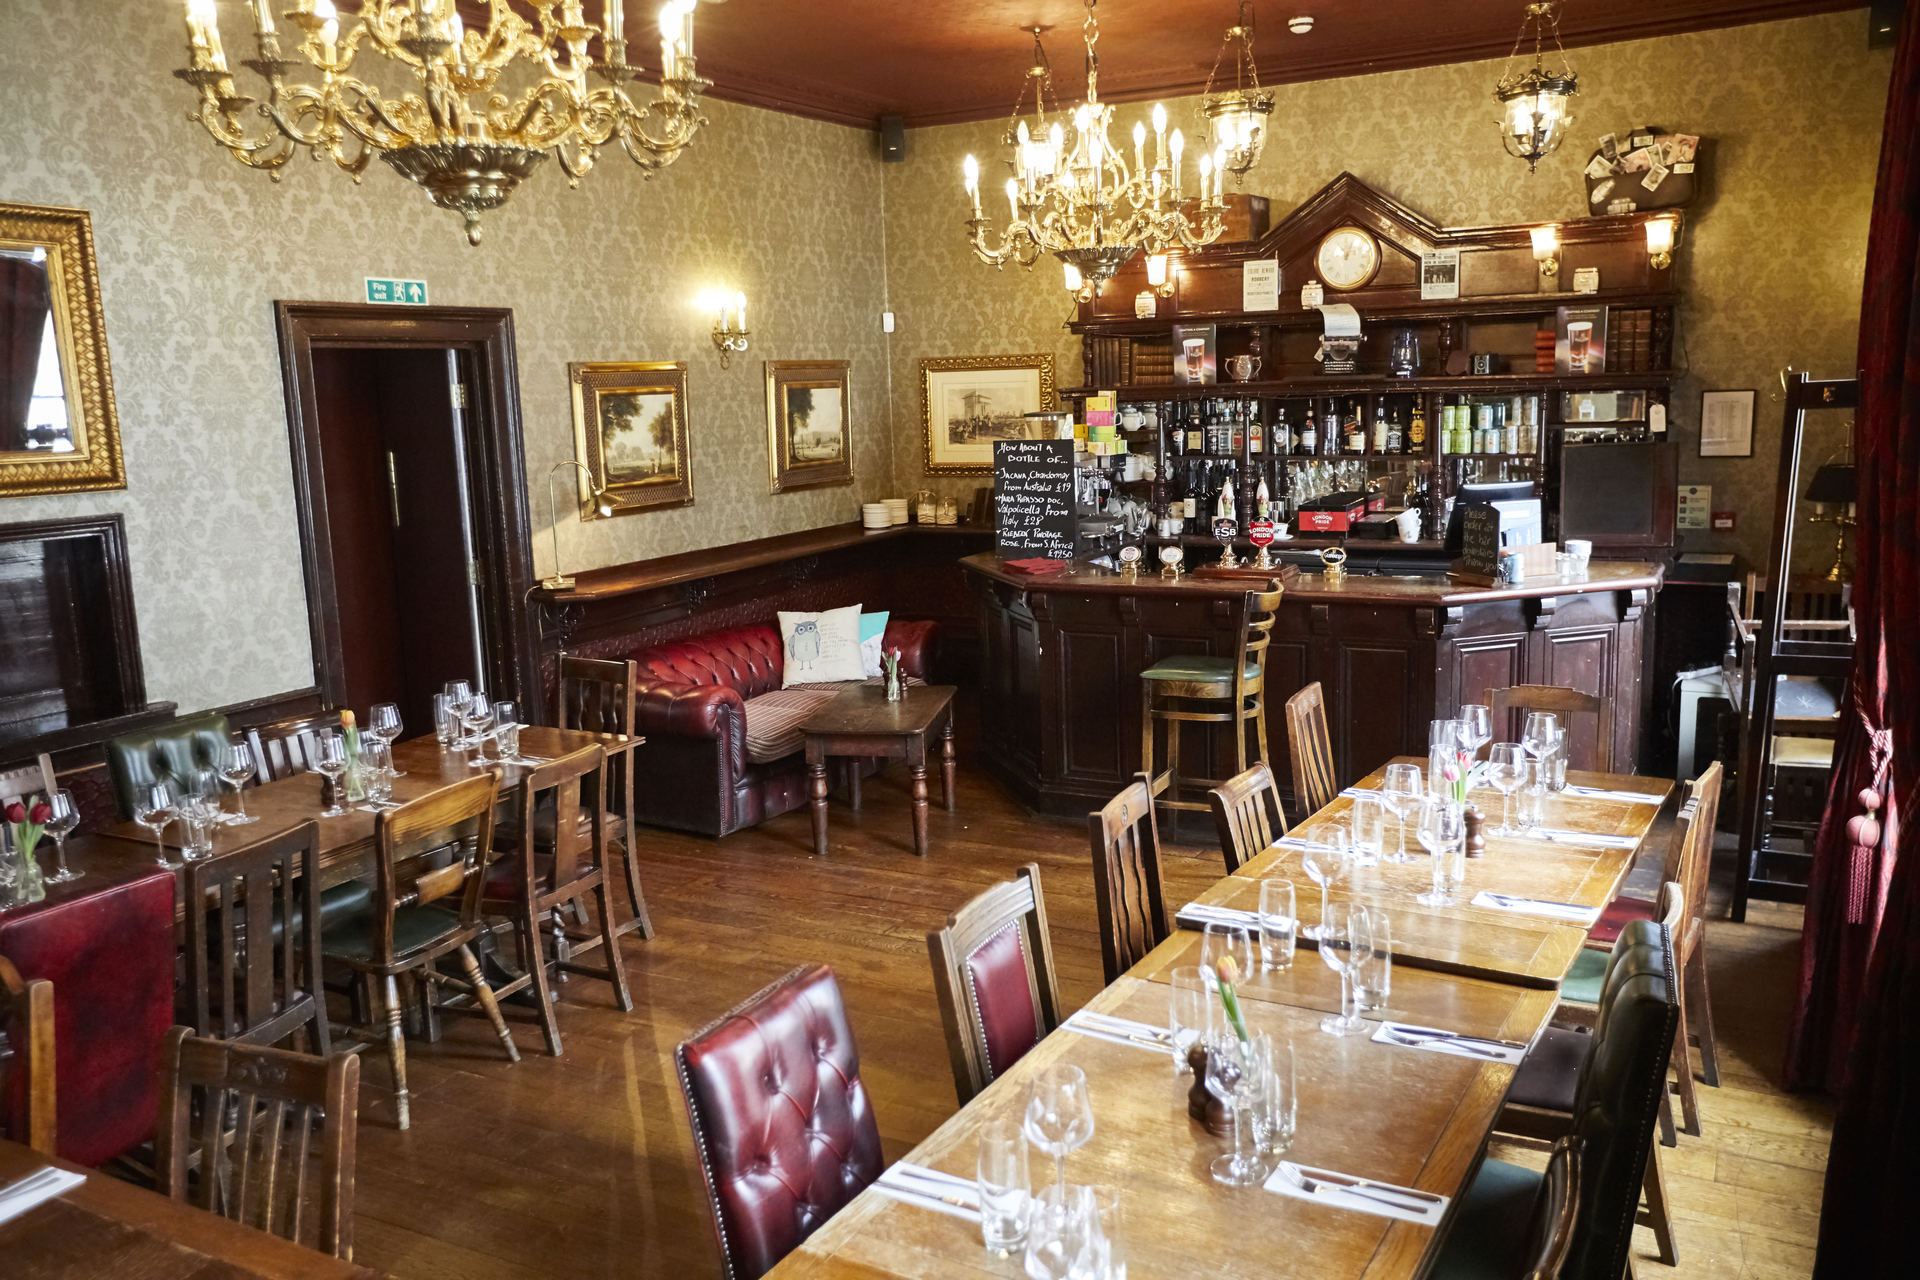 The Star Tavern Fullers Pub and Restaurant in Belgravia